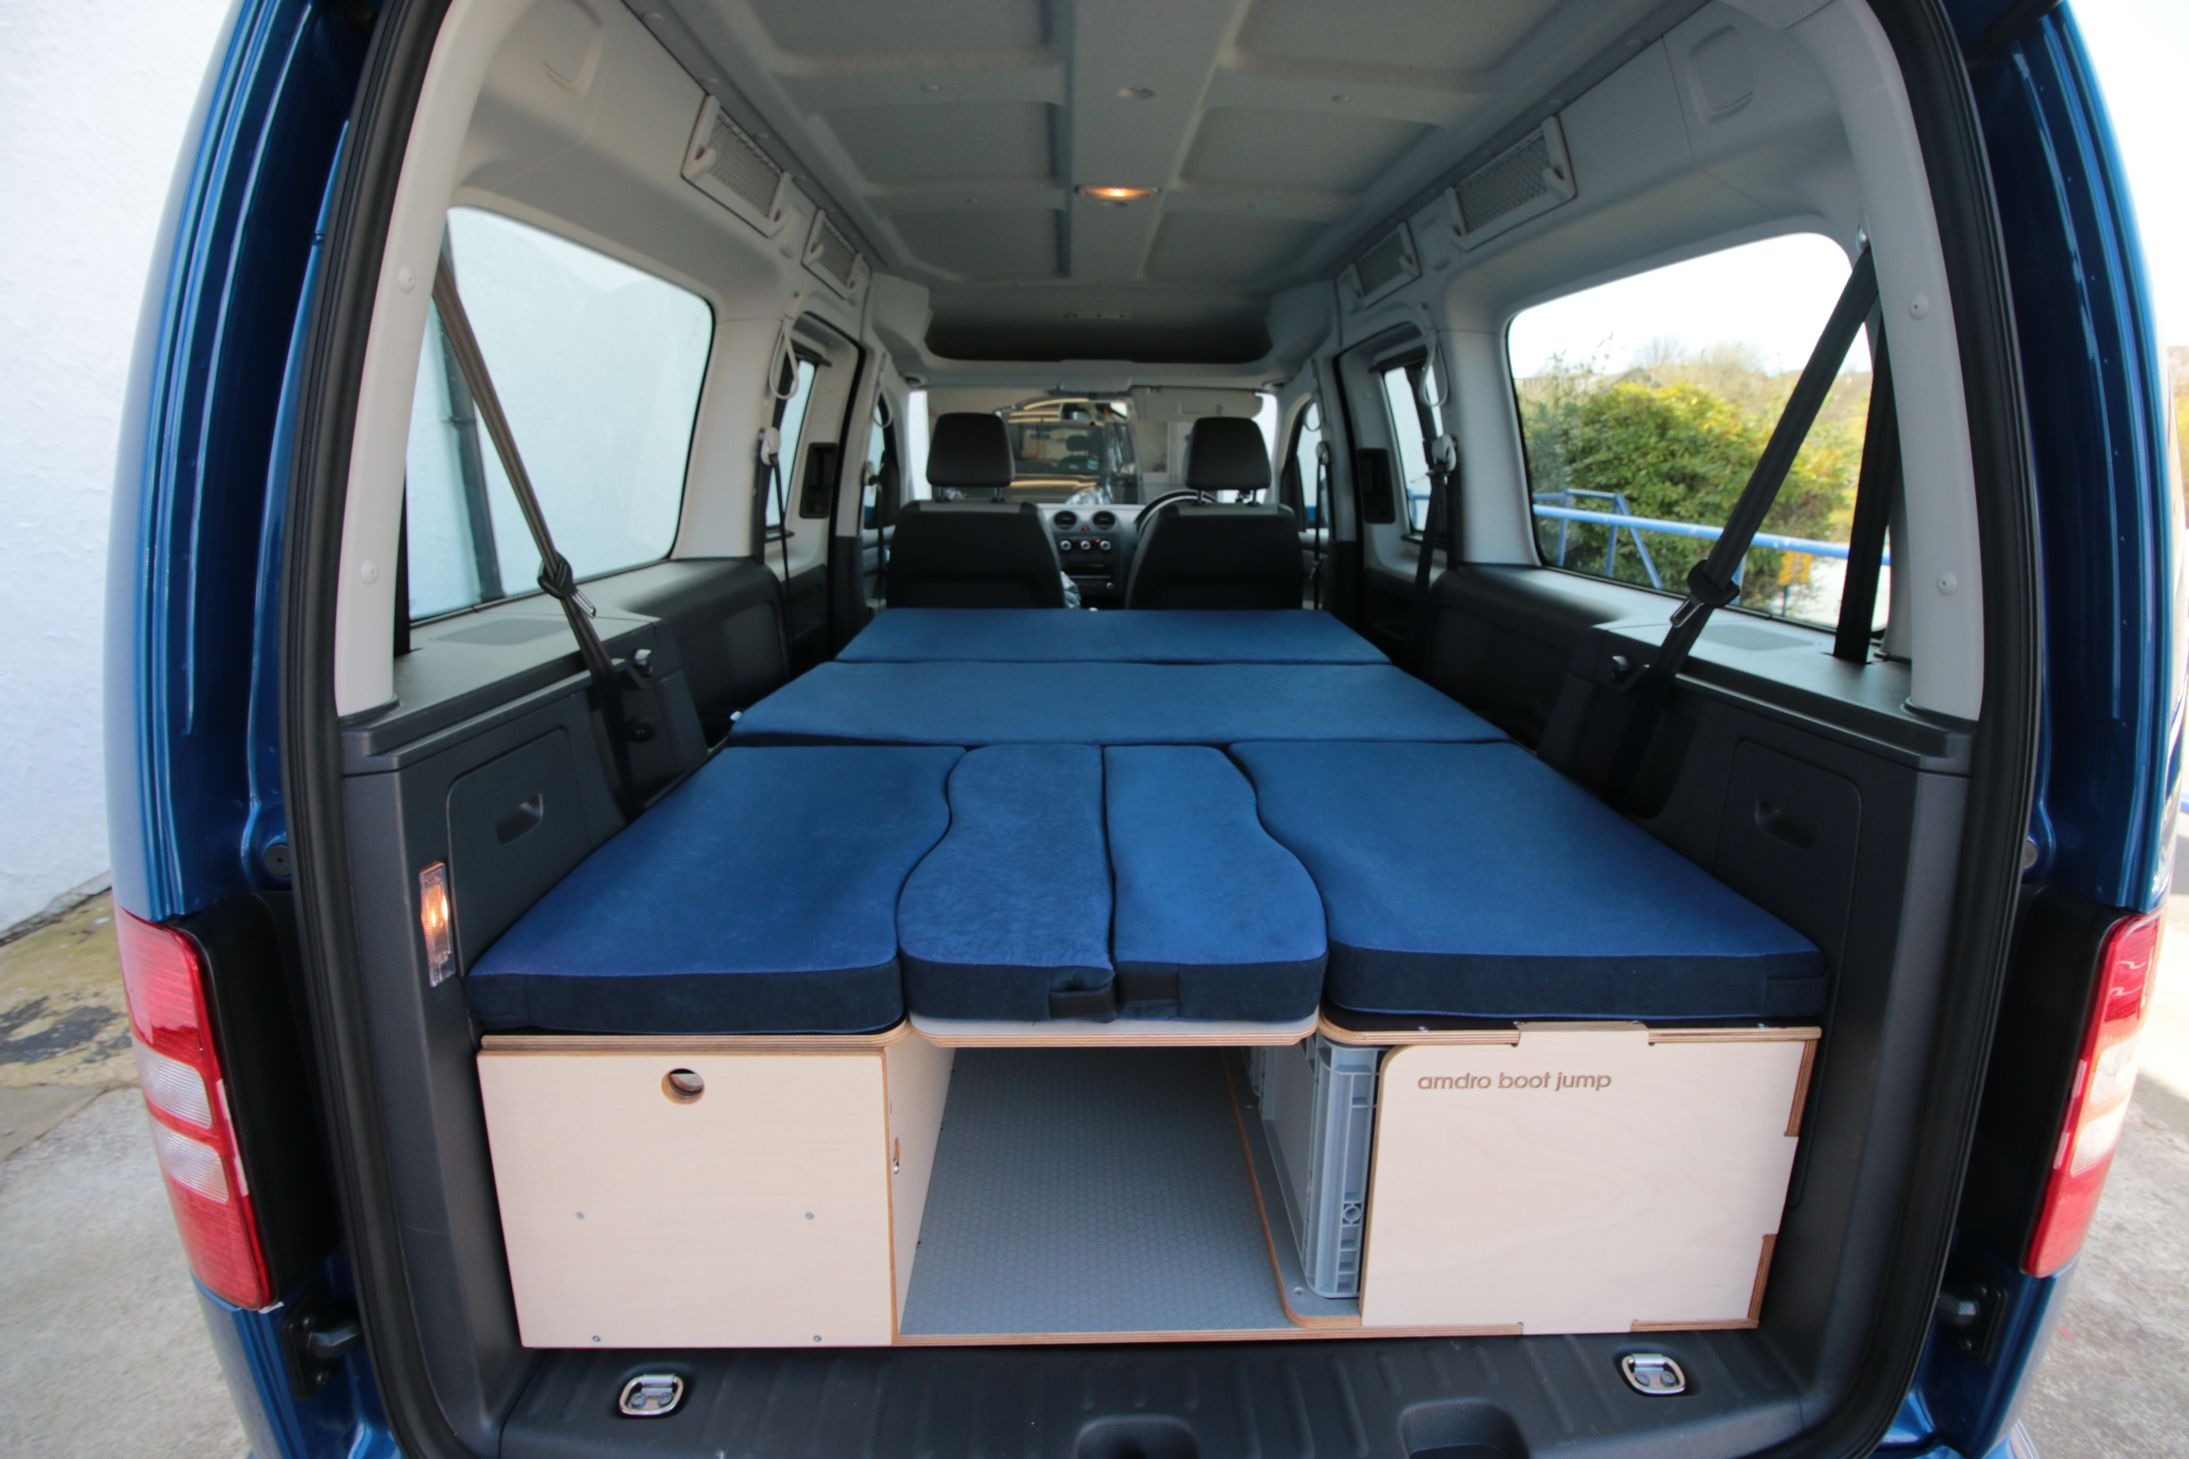 camping box vw caddy maxi vw caddy fold out bed storage. Black Bedroom Furniture Sets. Home Design Ideas